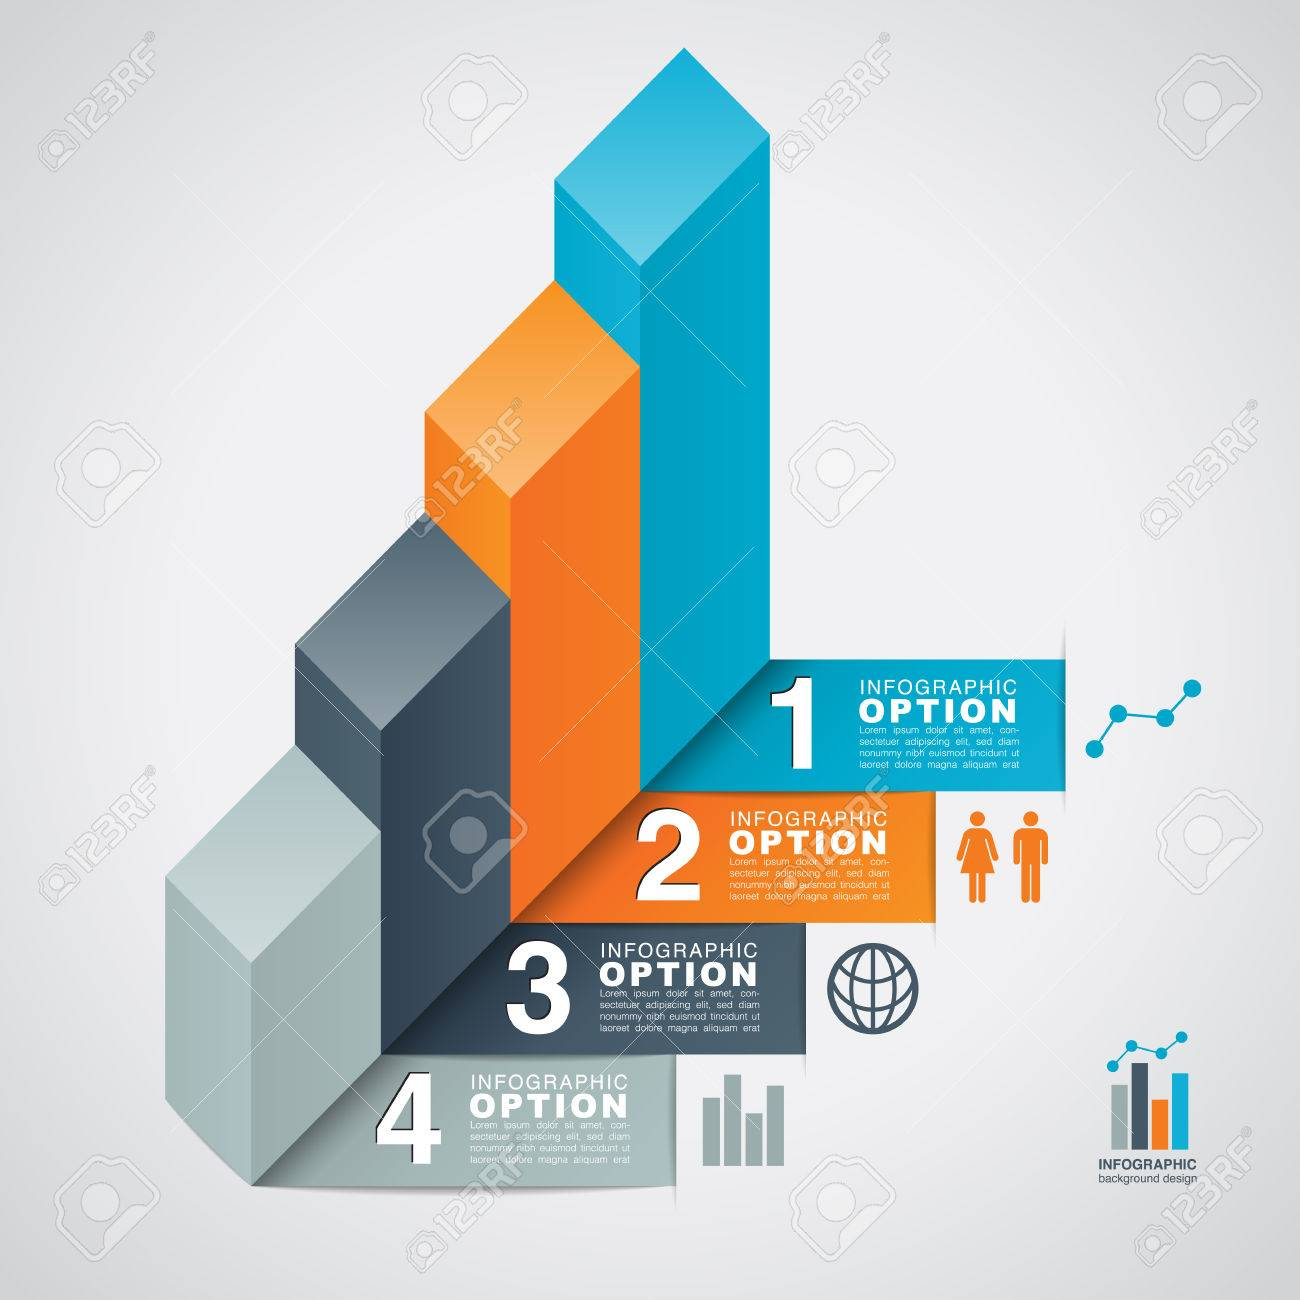 bar graph infographic option background - infographic option